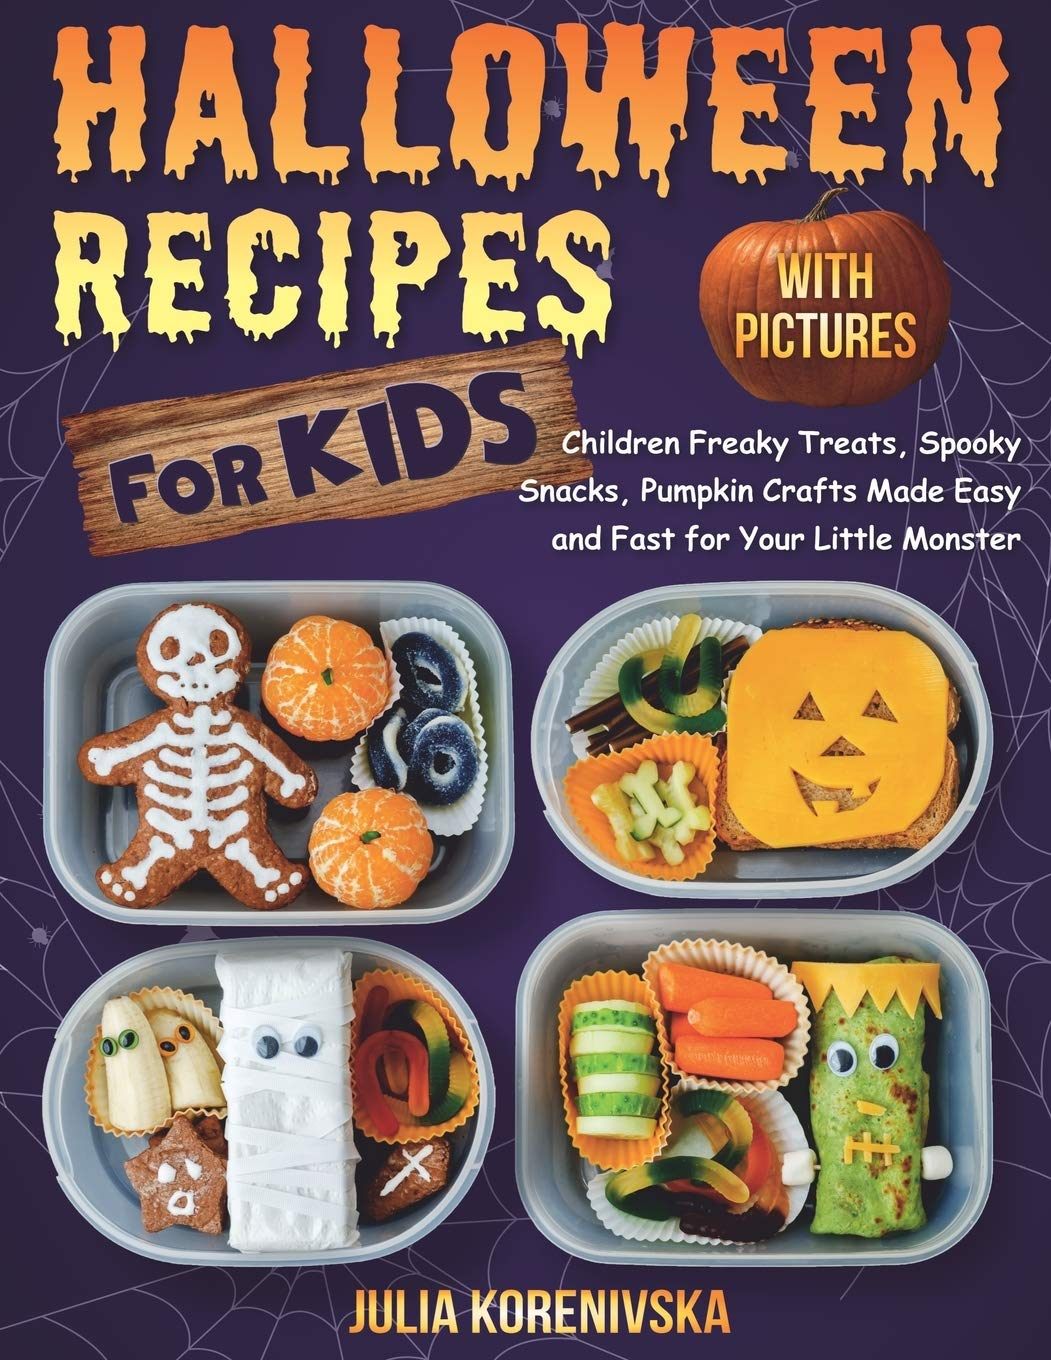 Halloween Crafts And Treats.Buy Halloween Recipes For Kids Halloween Children Freaky Treats Spooky Snacks Pumpkin Crafts Made Easy And Fast For Your Little Monster Halloween Crafts Ghosts Step By Step Guide Book Online At Low